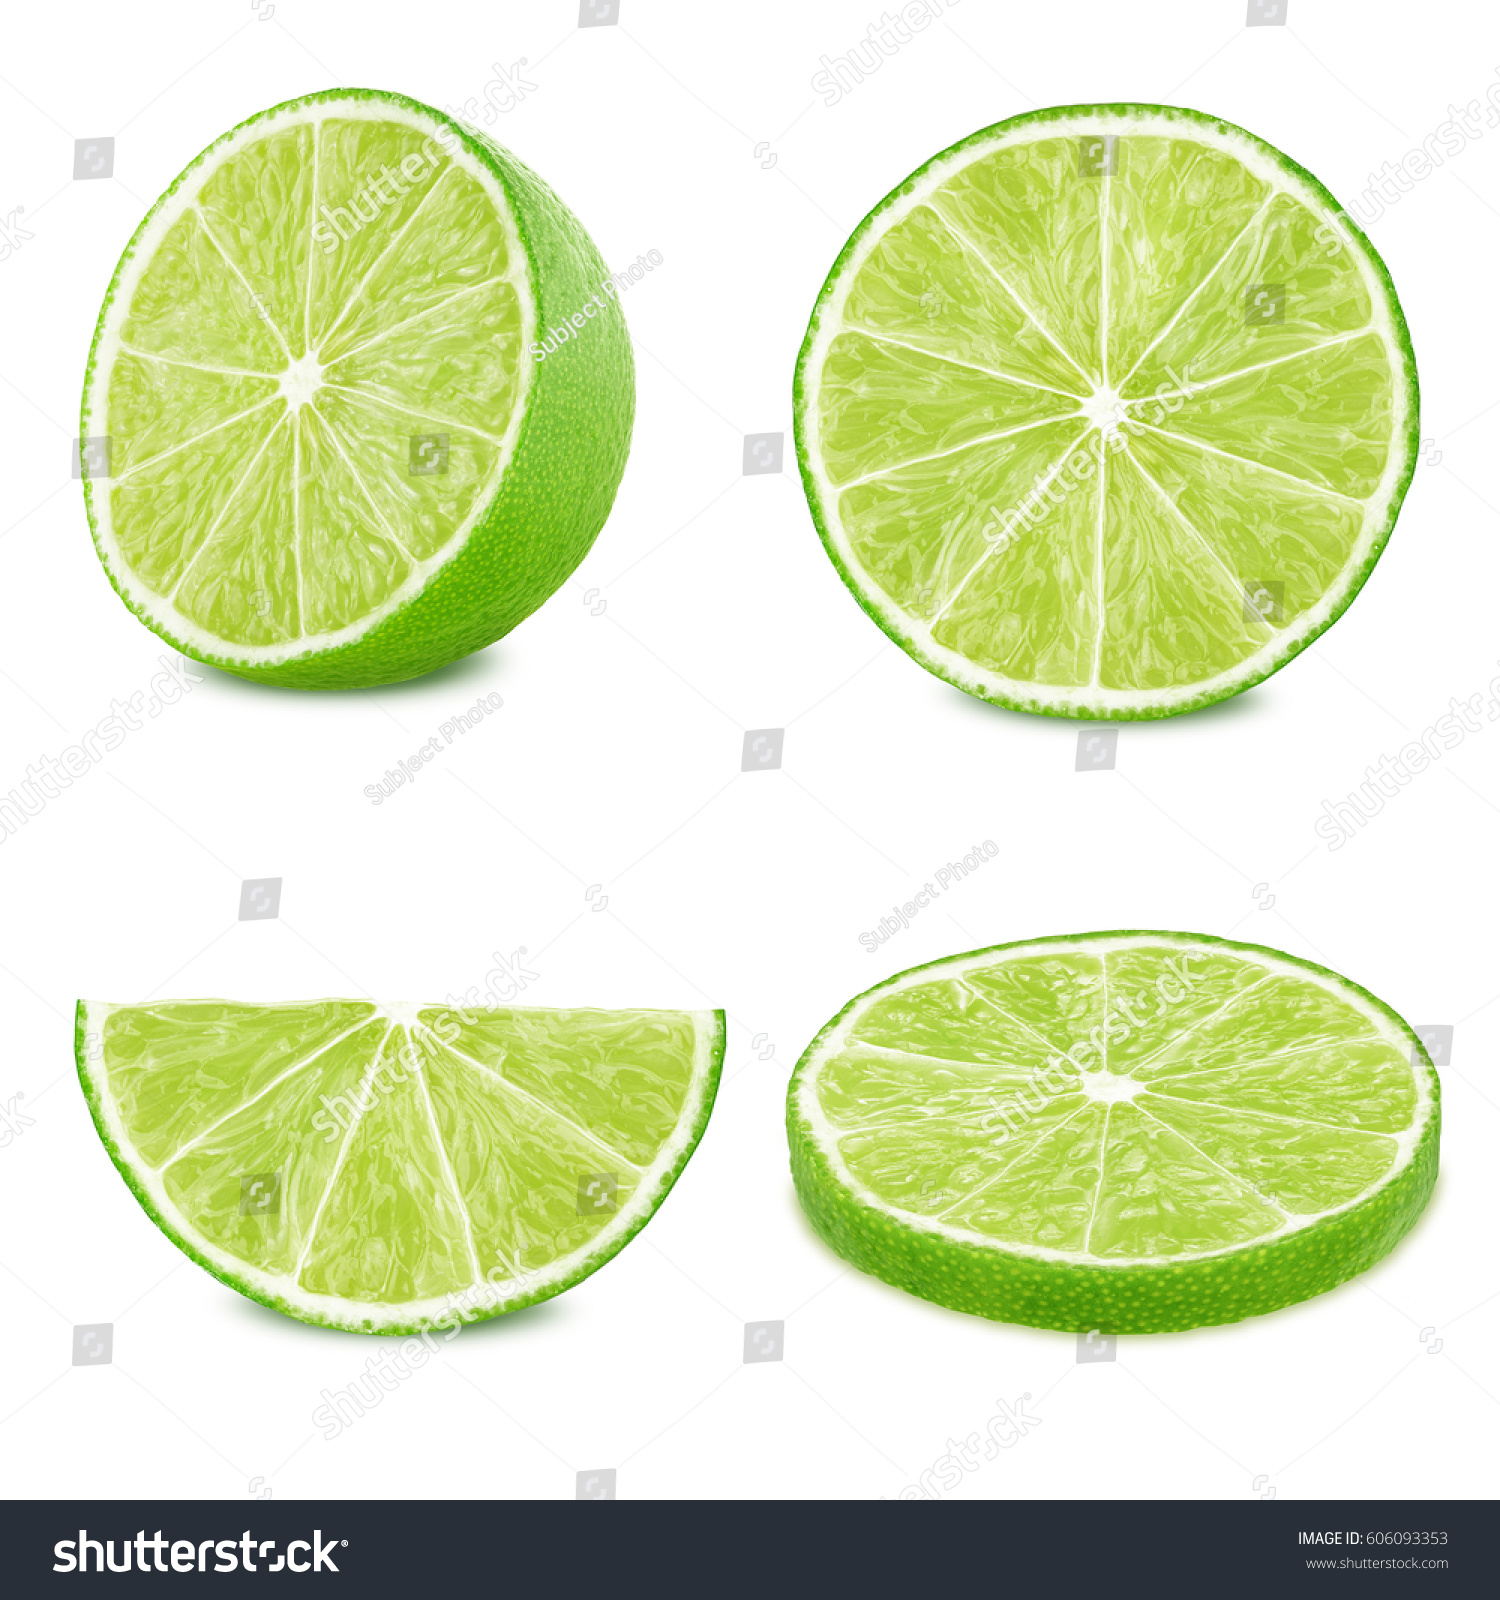 Lime slices set isolated on white background #606093353